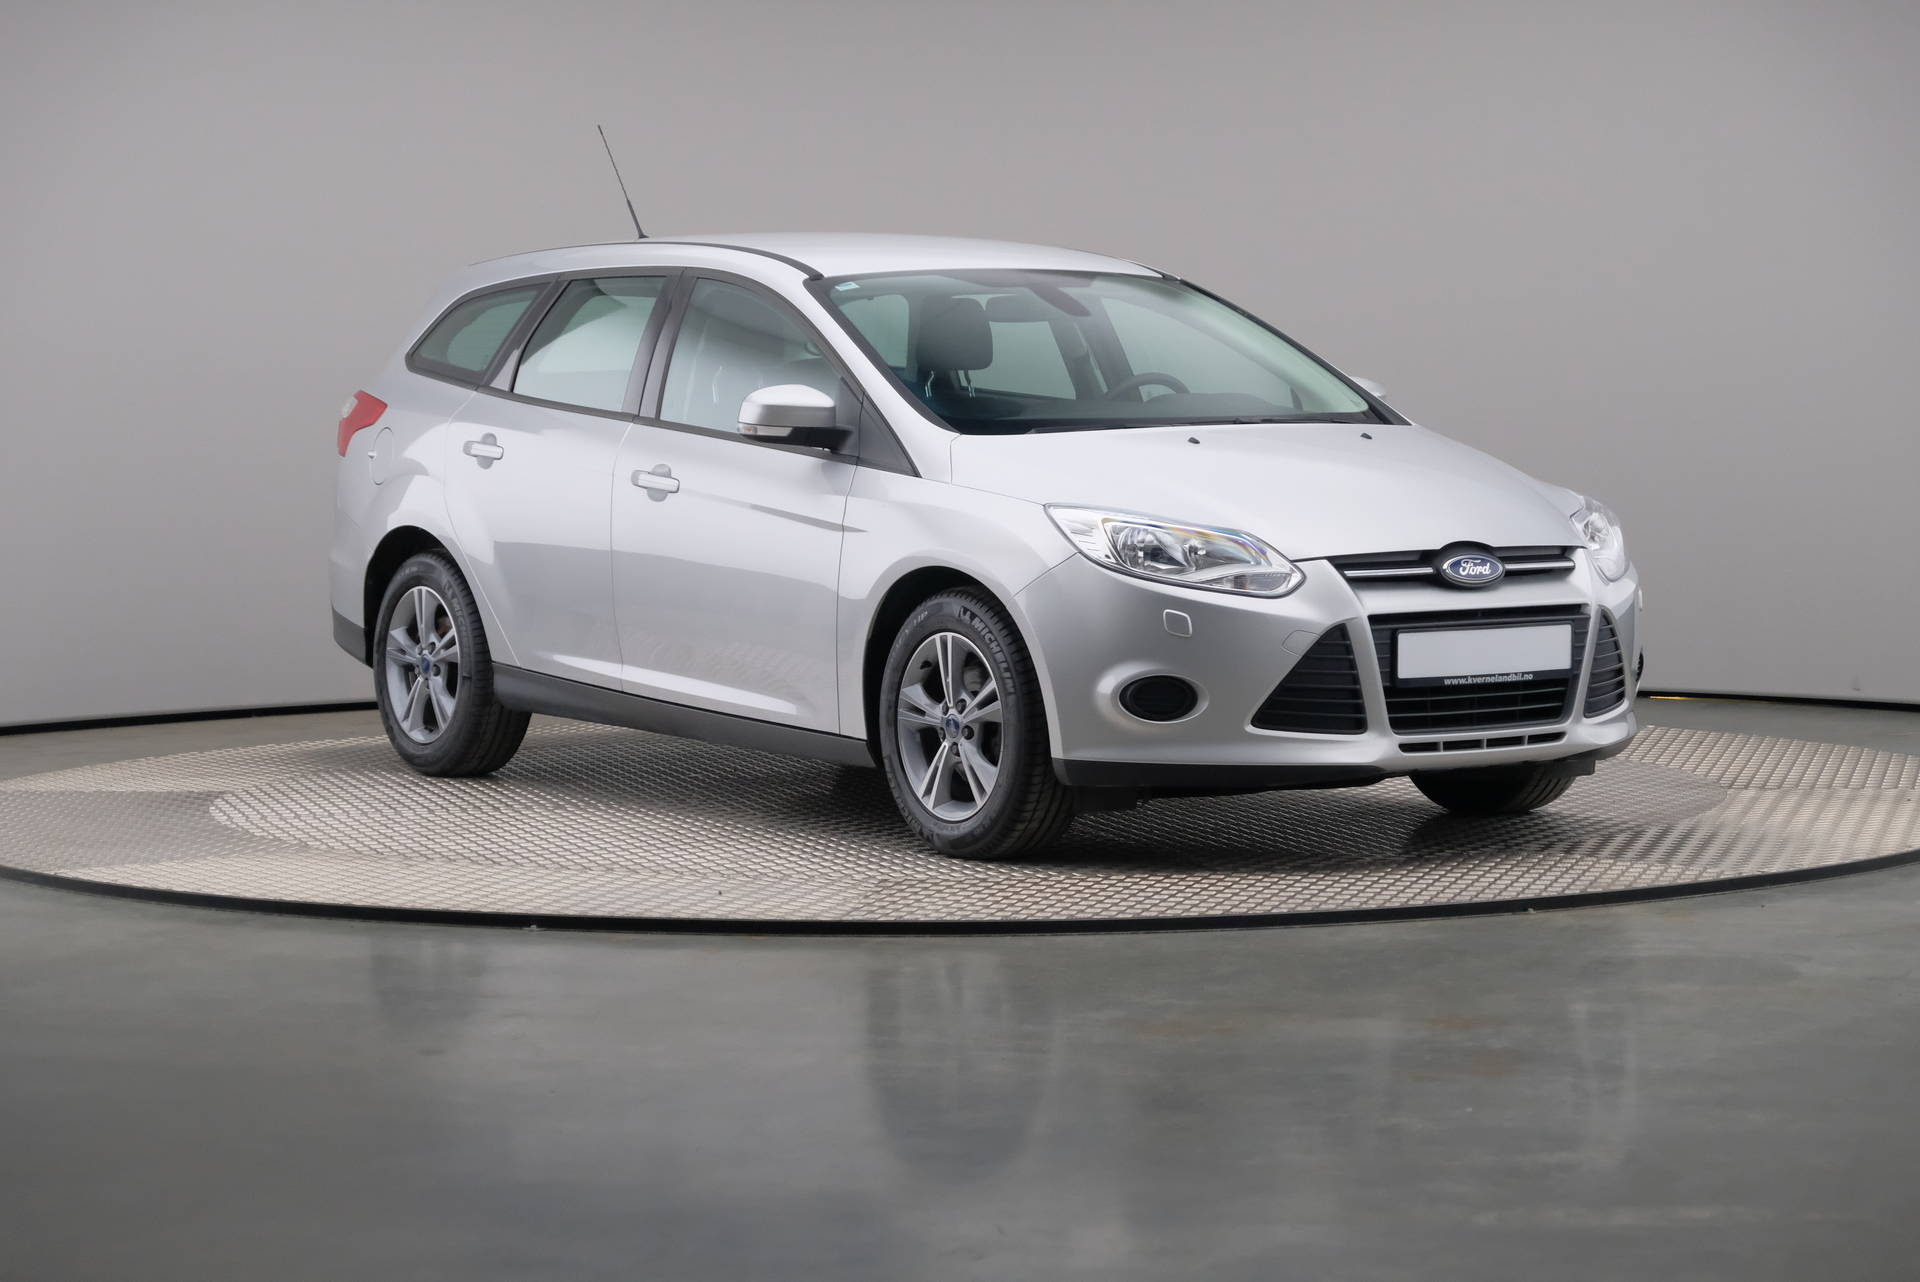 Ford Focus 1.1 100HK Trend PDC/BT, 360-image28